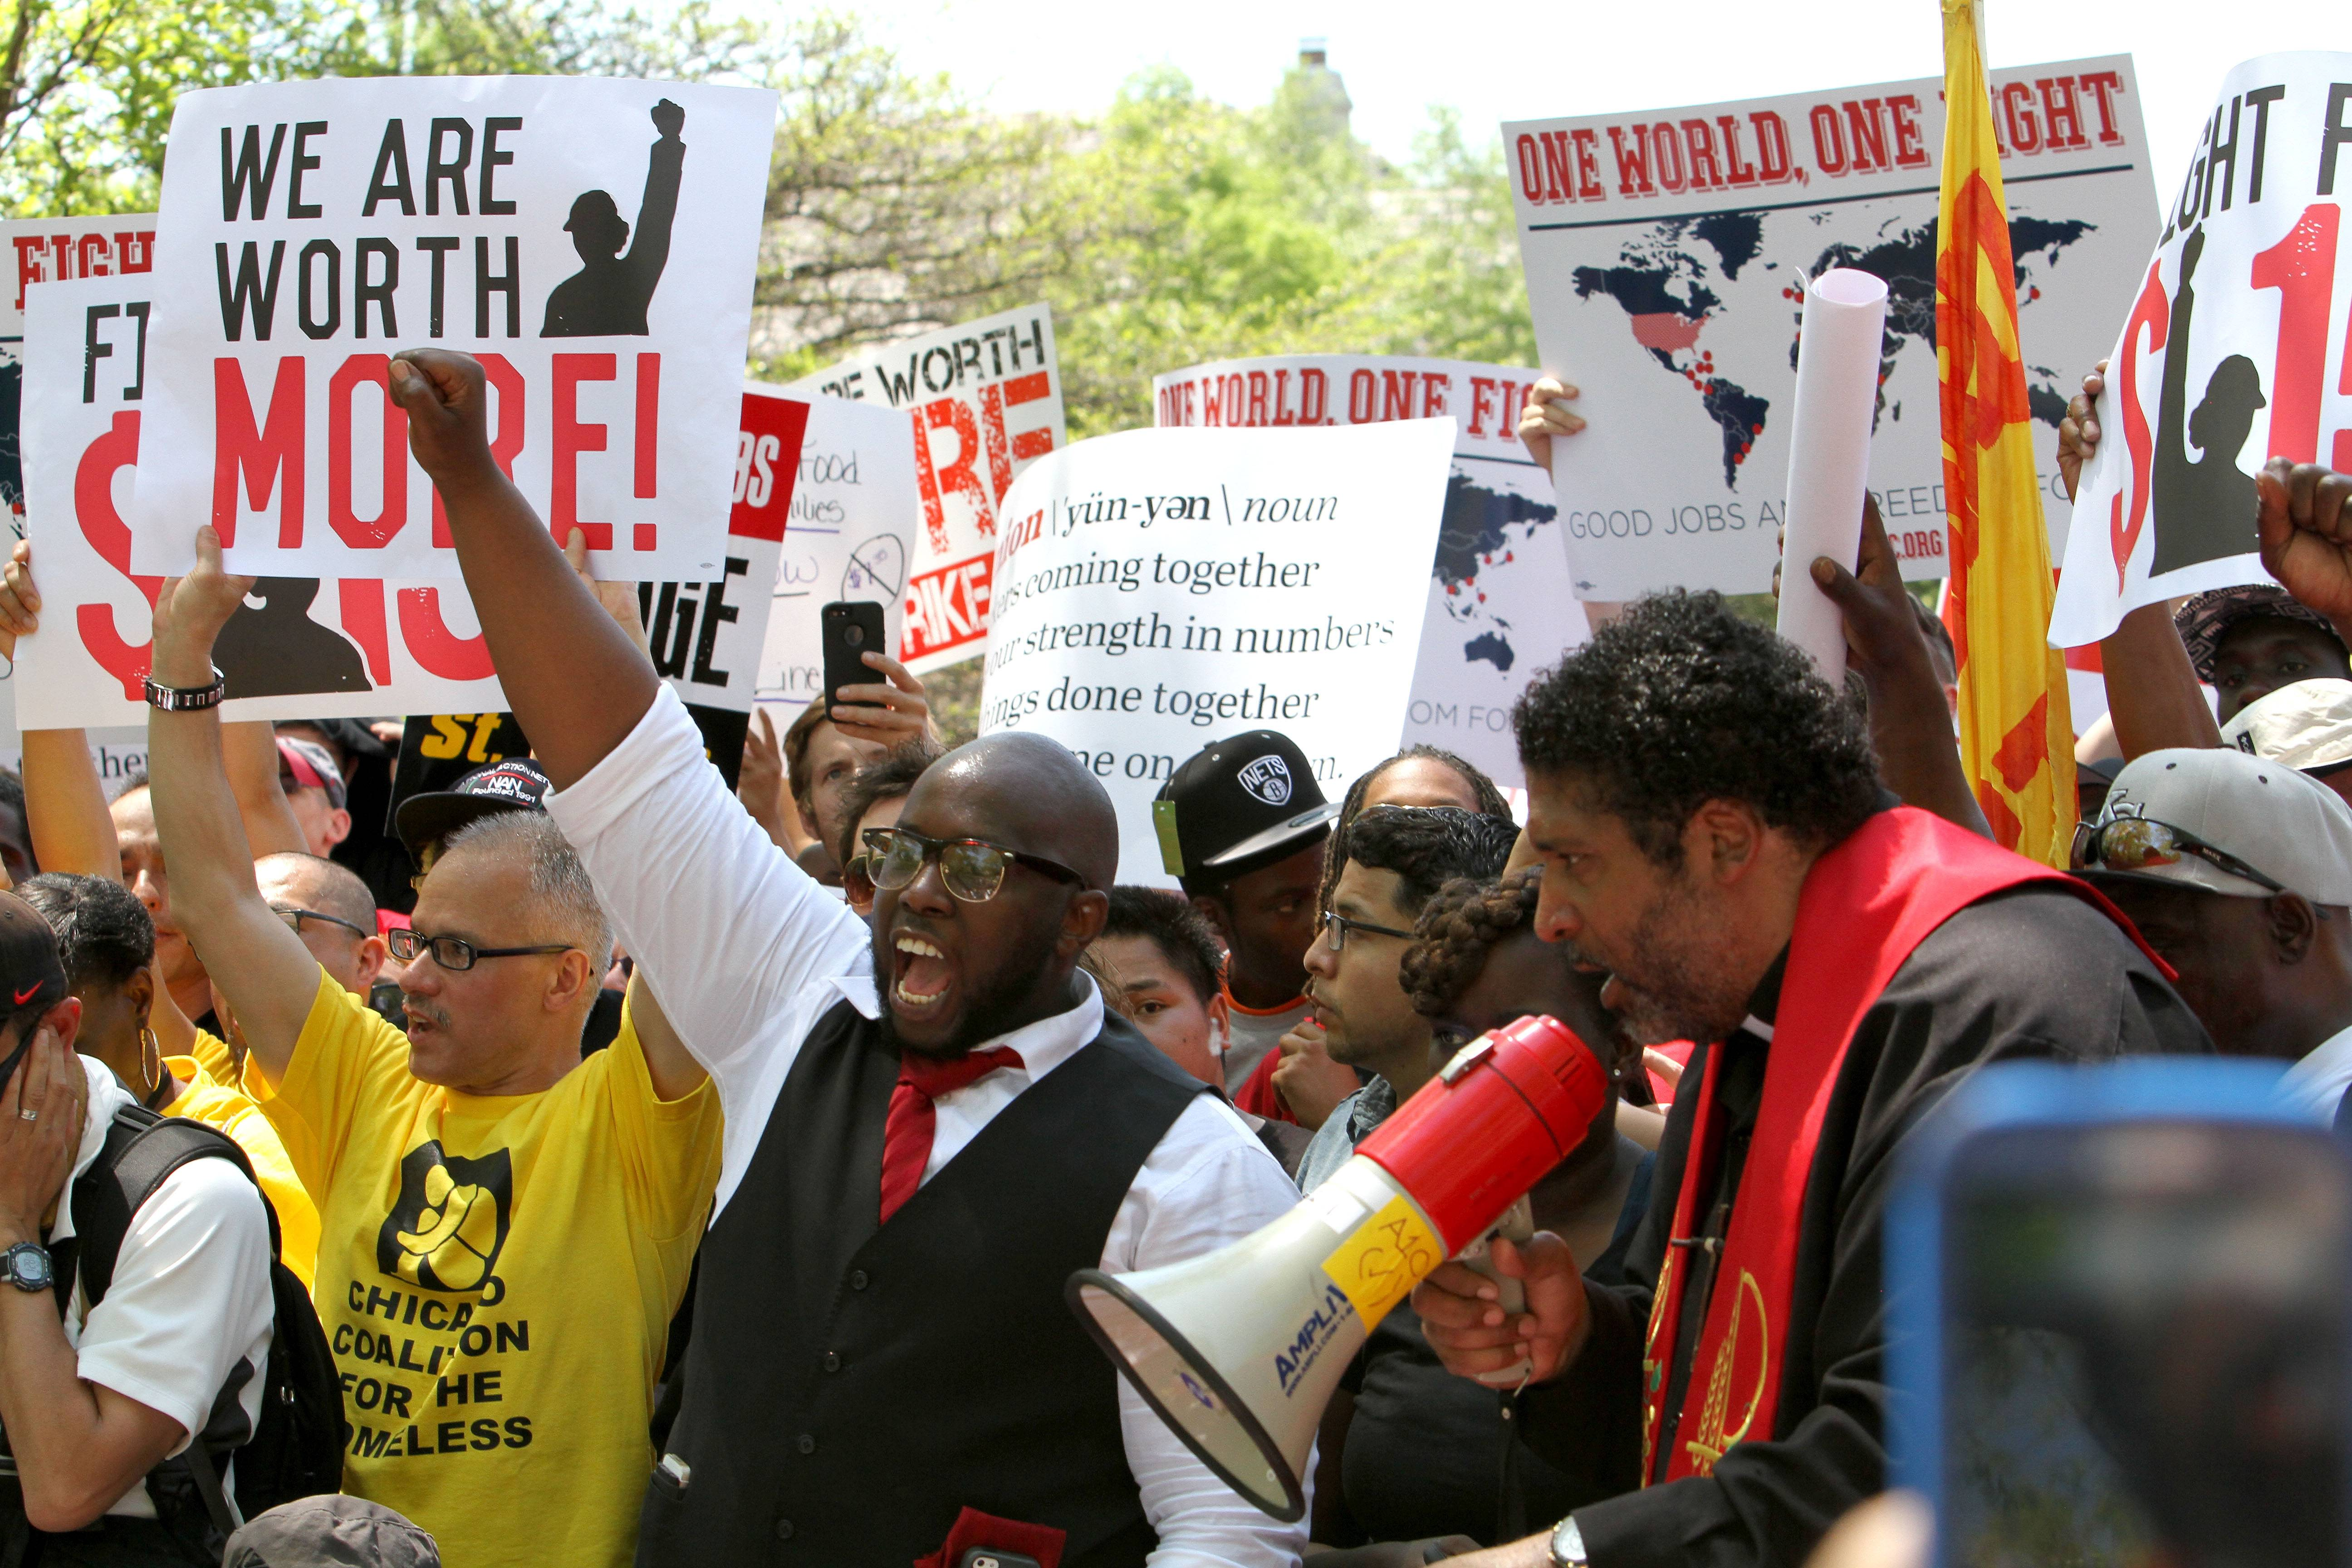 Protesters walk onto the property at McDonald's campus in Oak Brook on Wednesday to call for worker wages of $15 an hour.